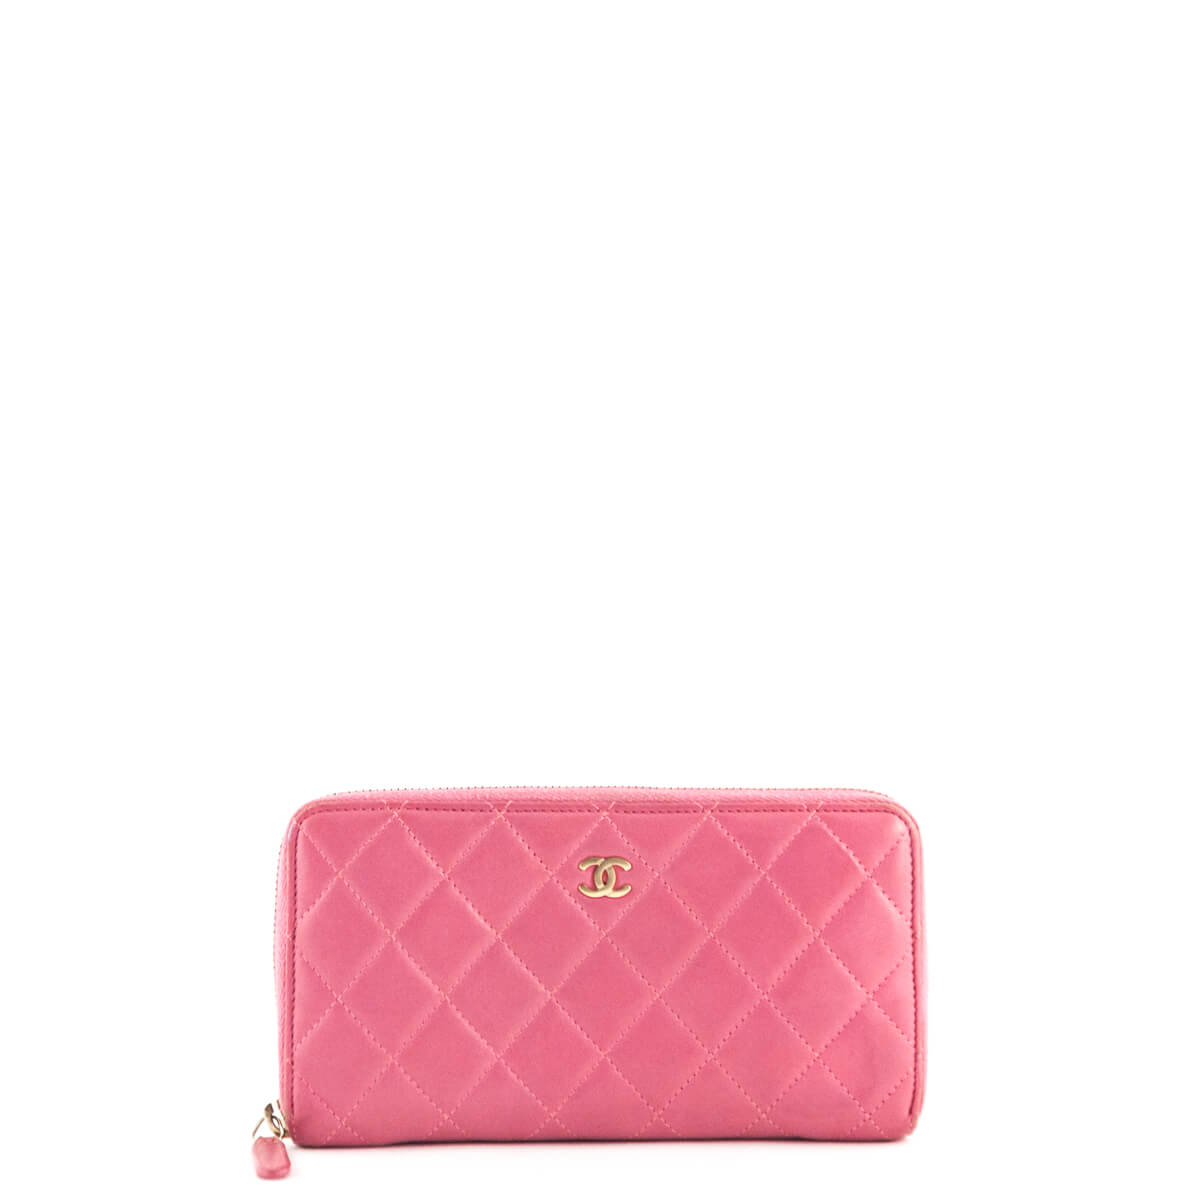 e966a97b0e44 Chanel Pink Quilted Lambskin Zip Around Wallet - LOVE that BAG - Preowned  Authentic Designer Handbags ...